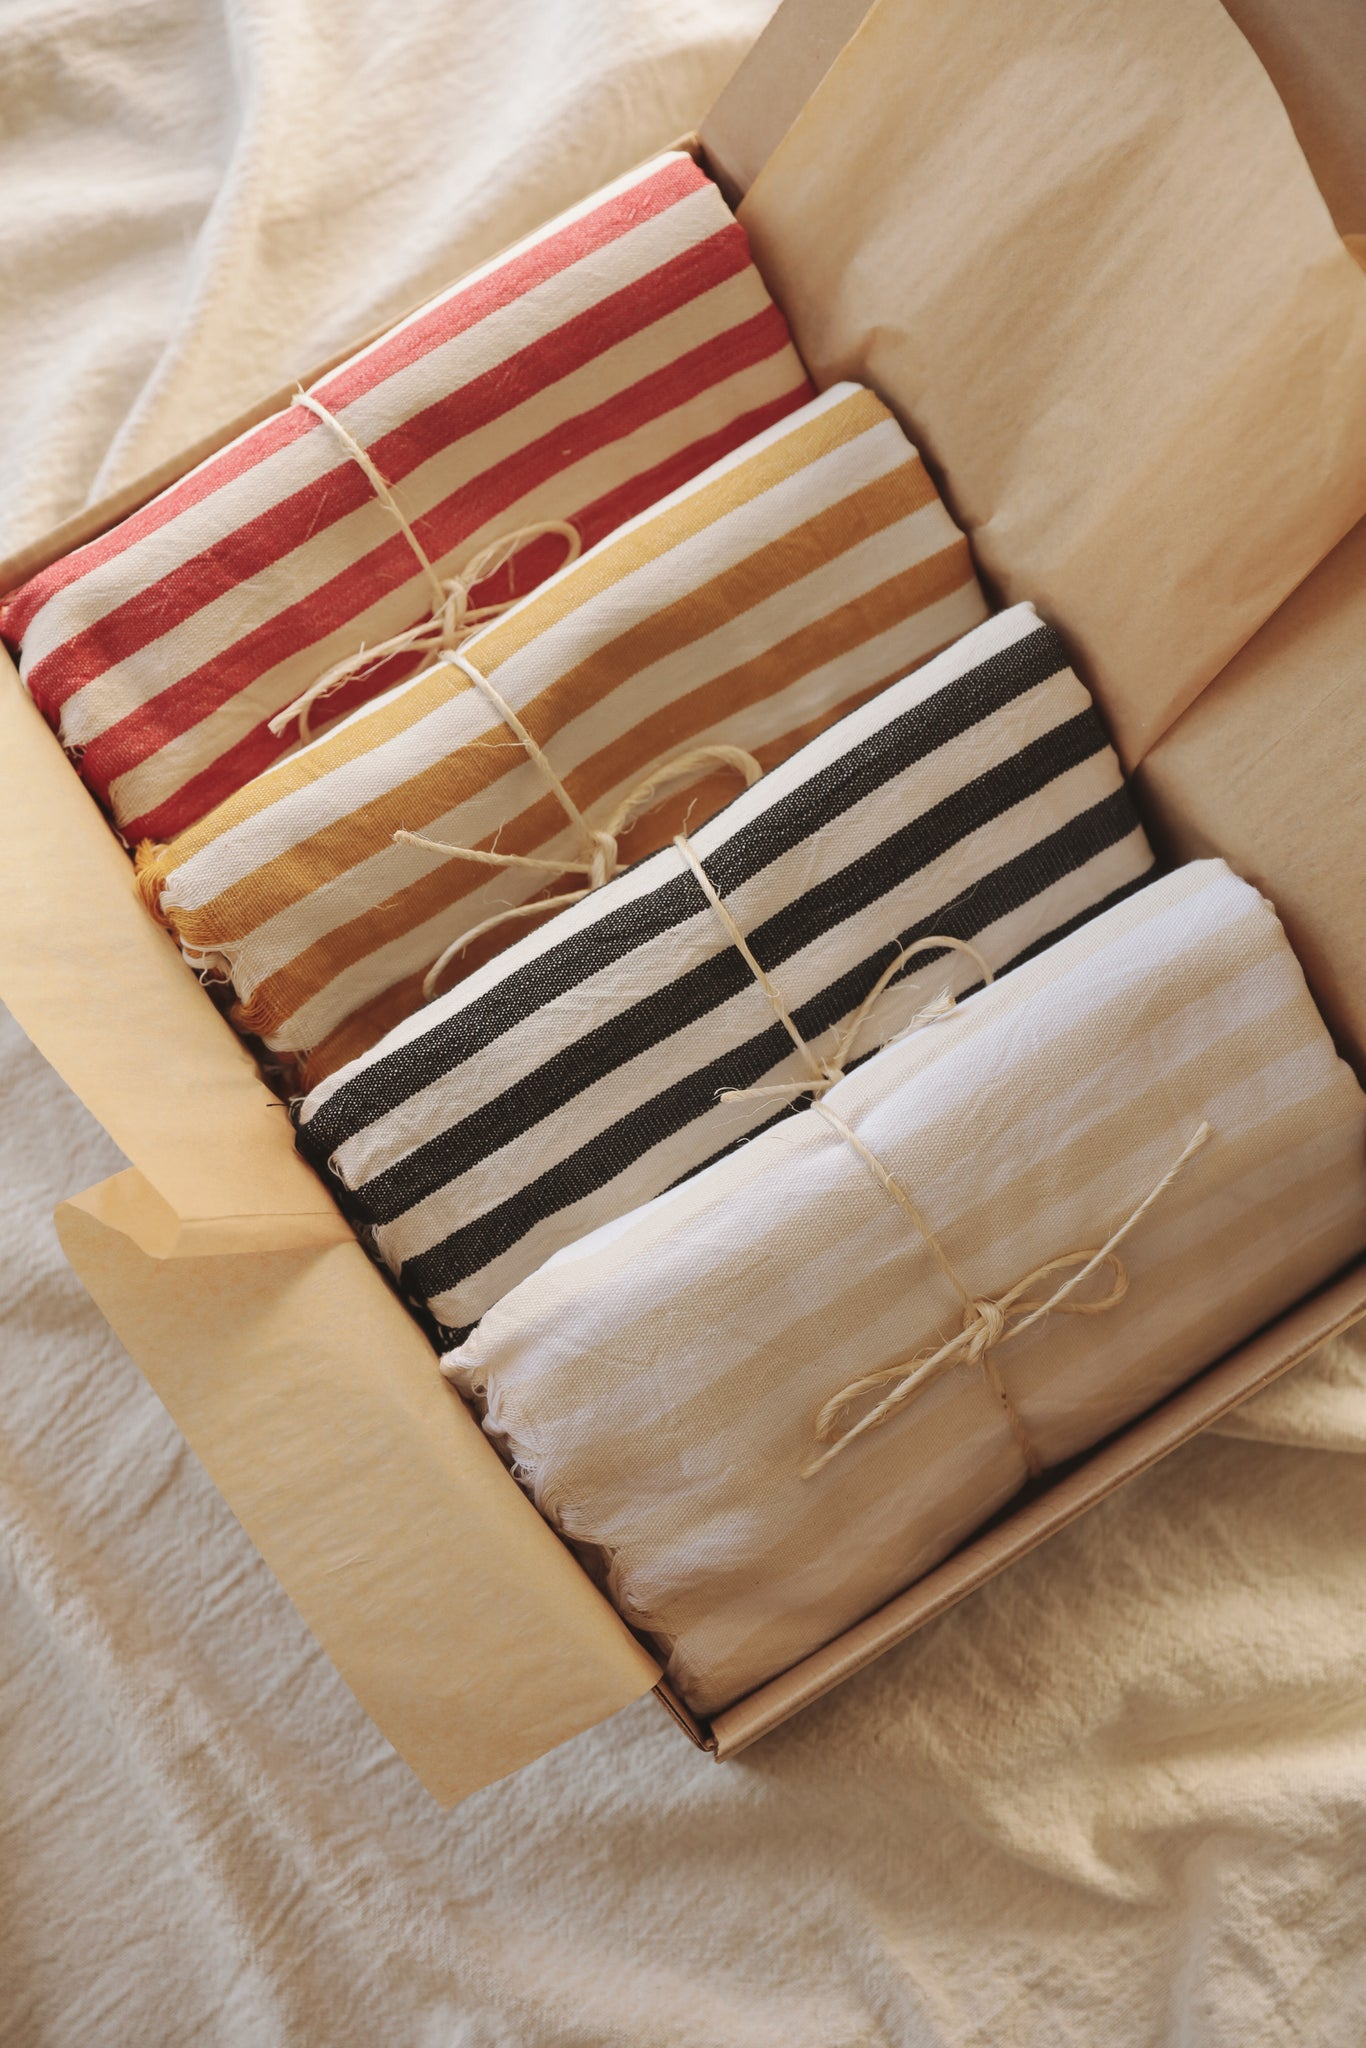 Sinoh Handwoven Towel Collection